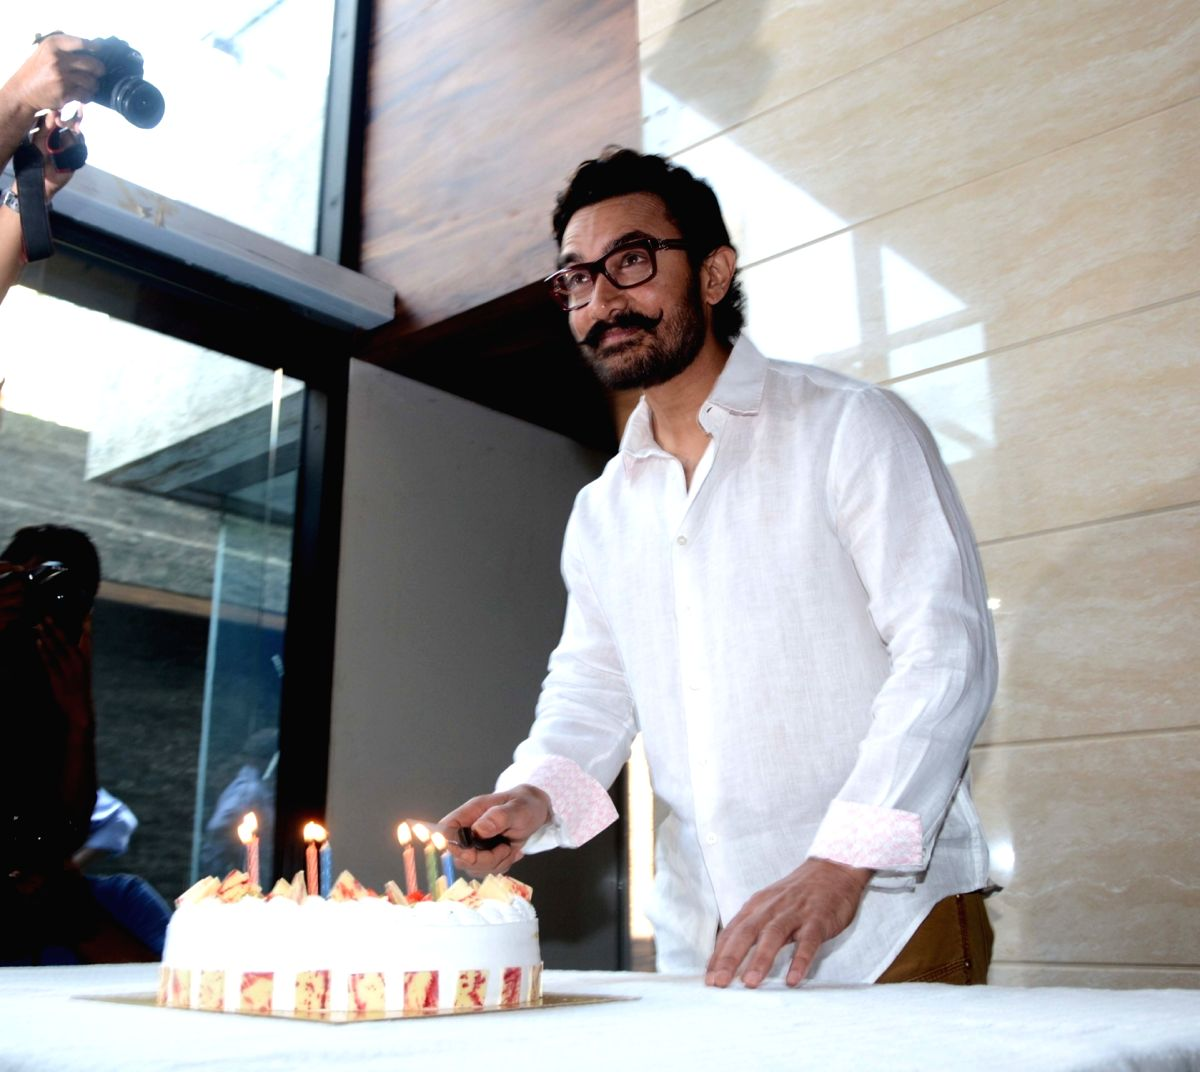 Actor Aamir Khan cuts a cake to celebrate his 52nd birthday in Mumbai on March 14, 2017.